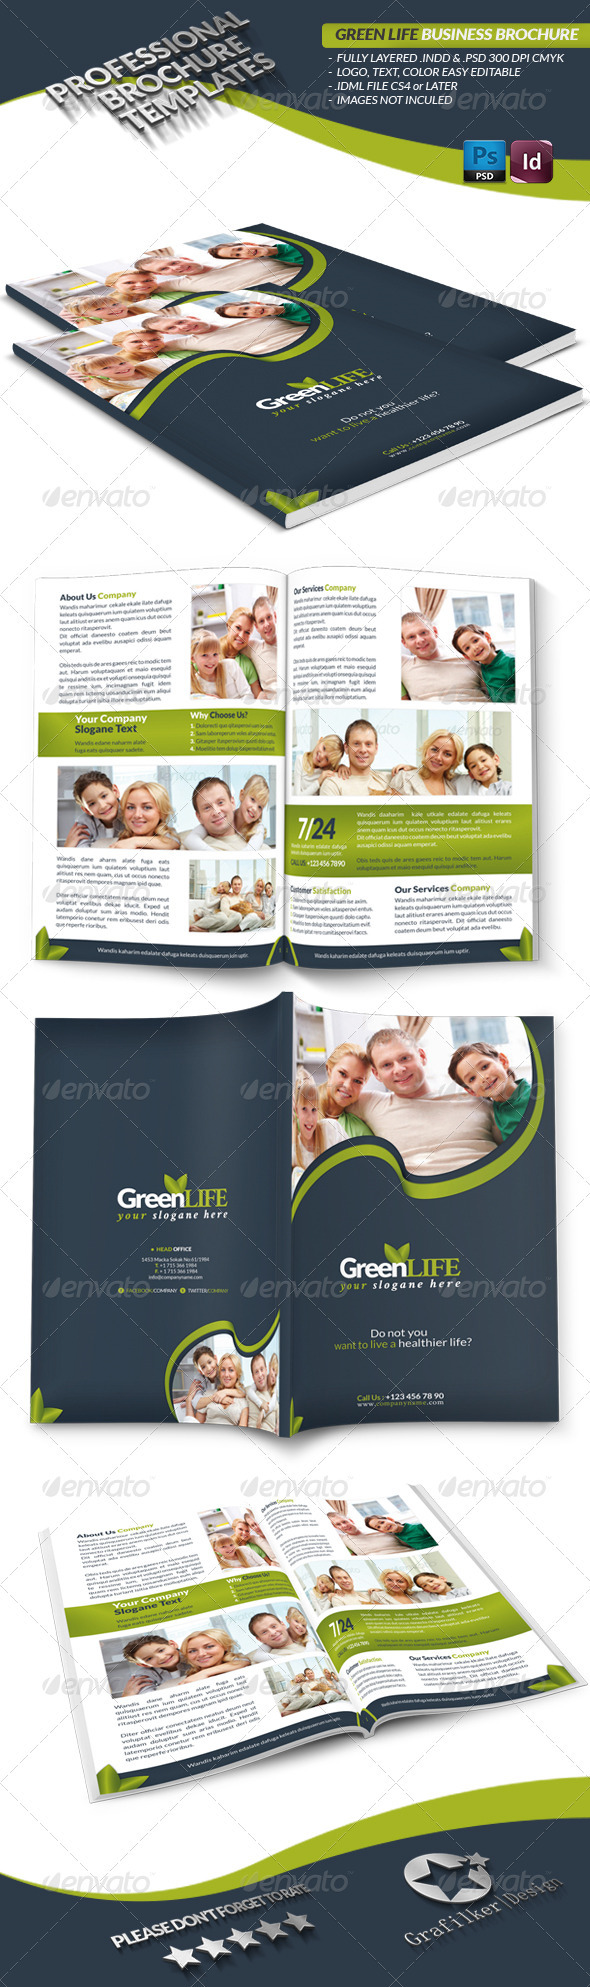 Green Life Business Brochure - Brochures Print Templates